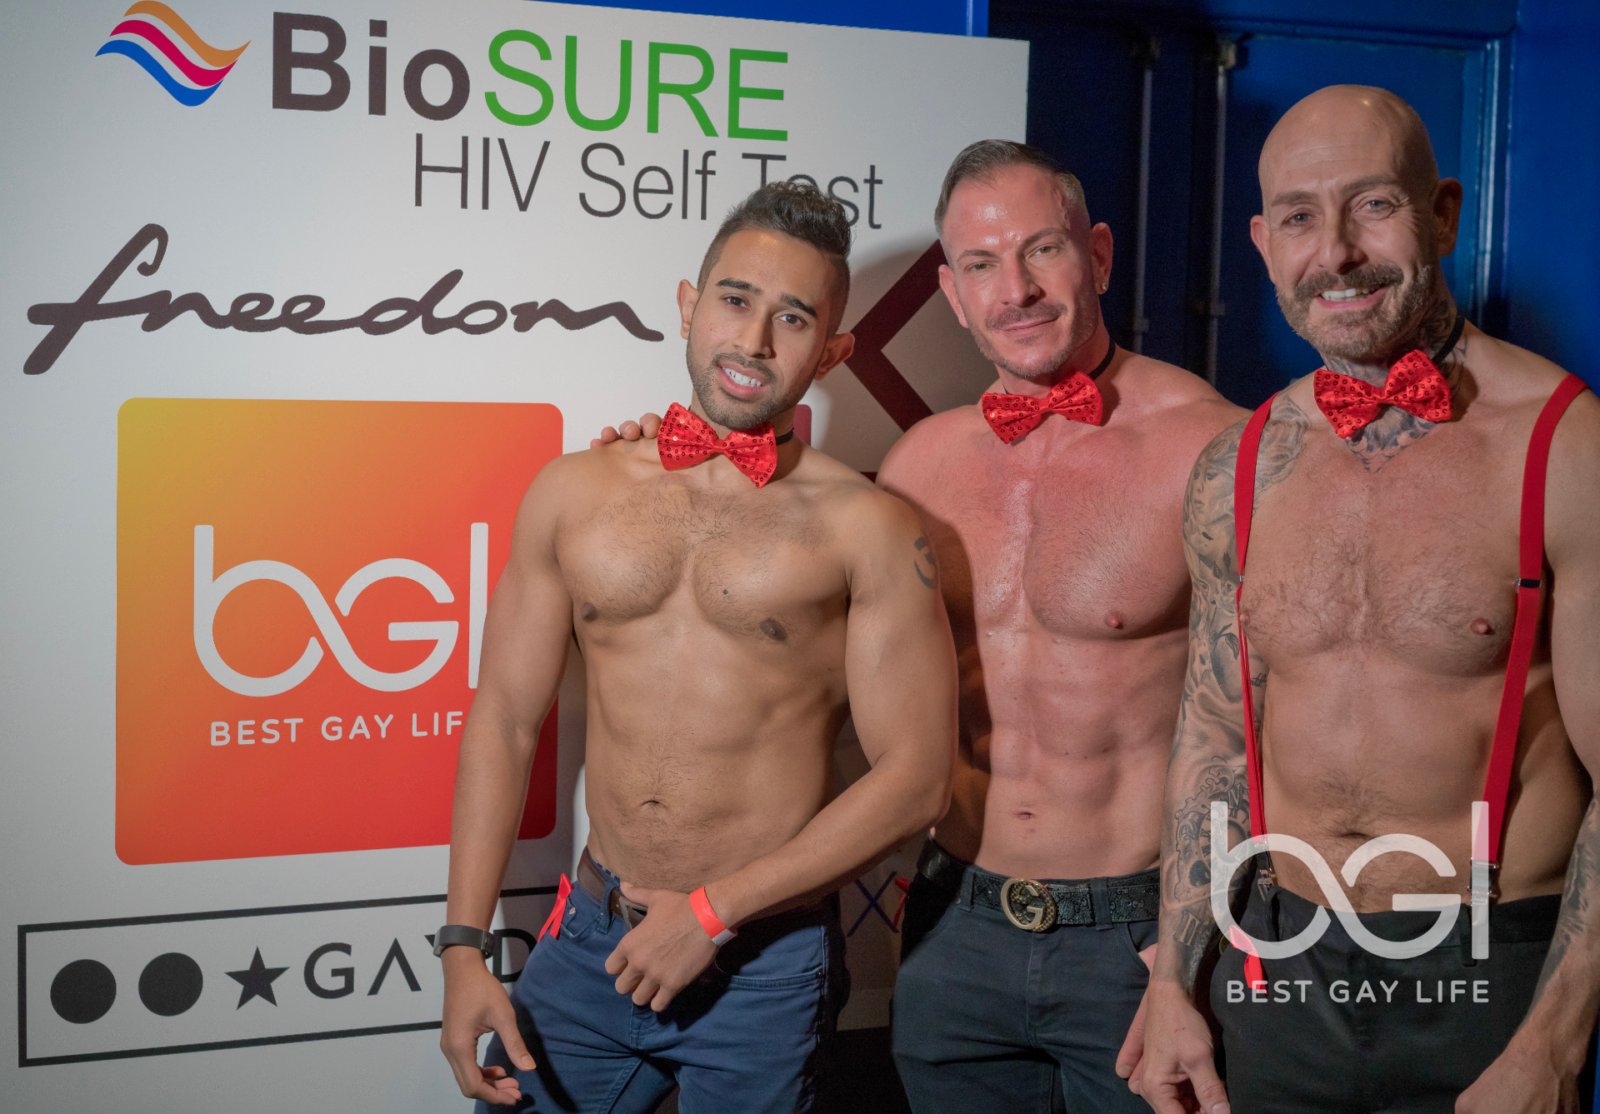 Best Gay Life, BioSure & DJ Keyth Know Your Status event